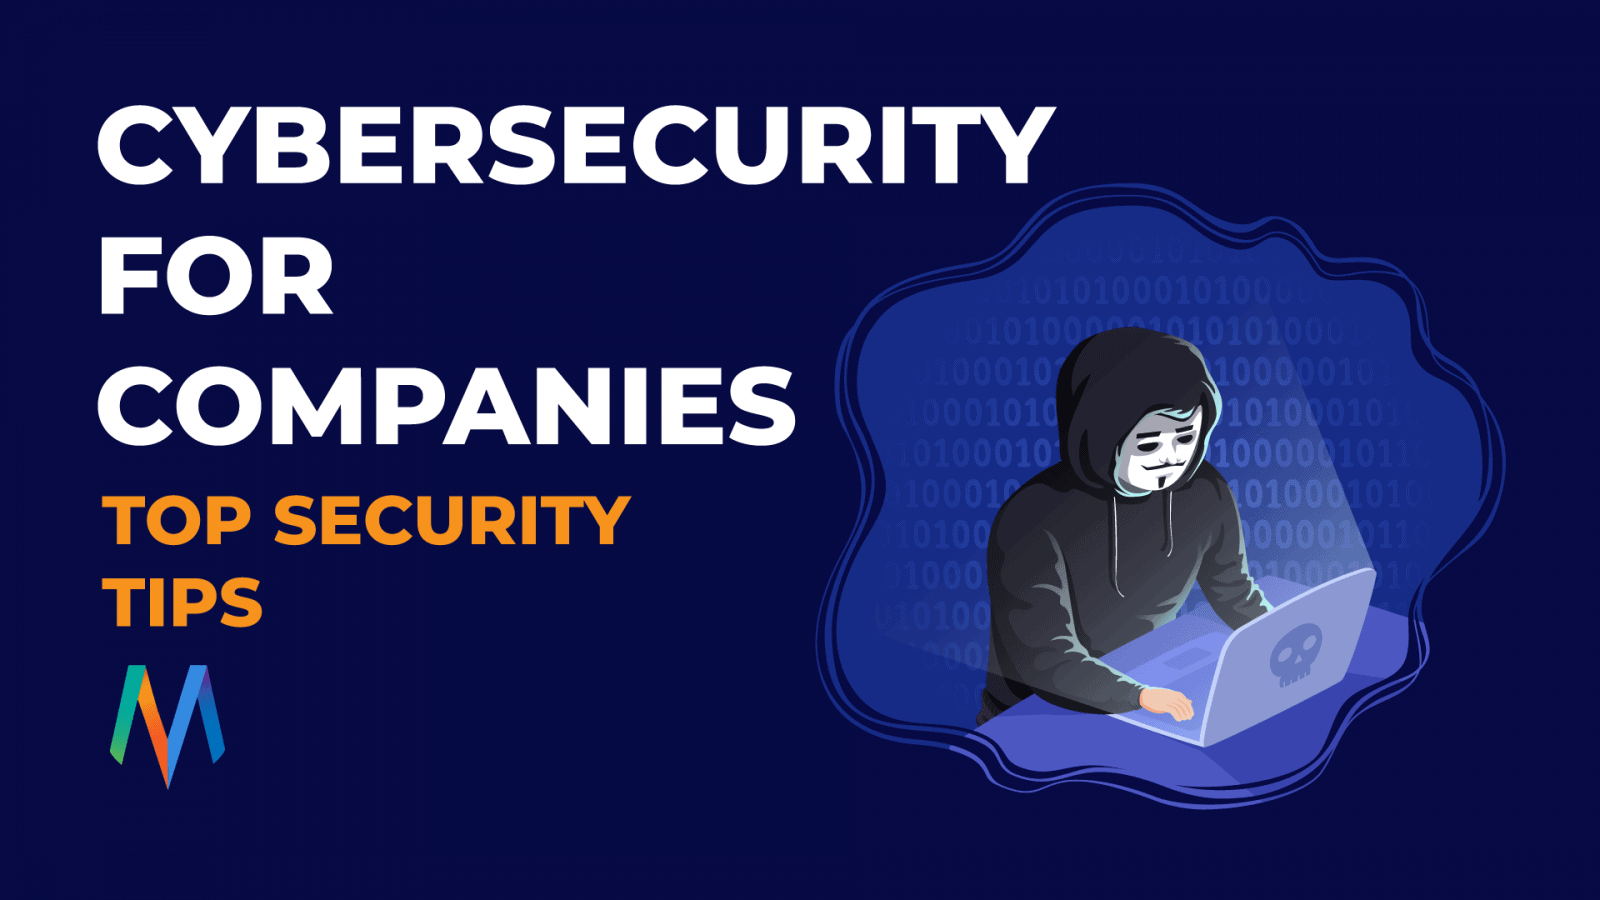 Cybersecurity for Companies